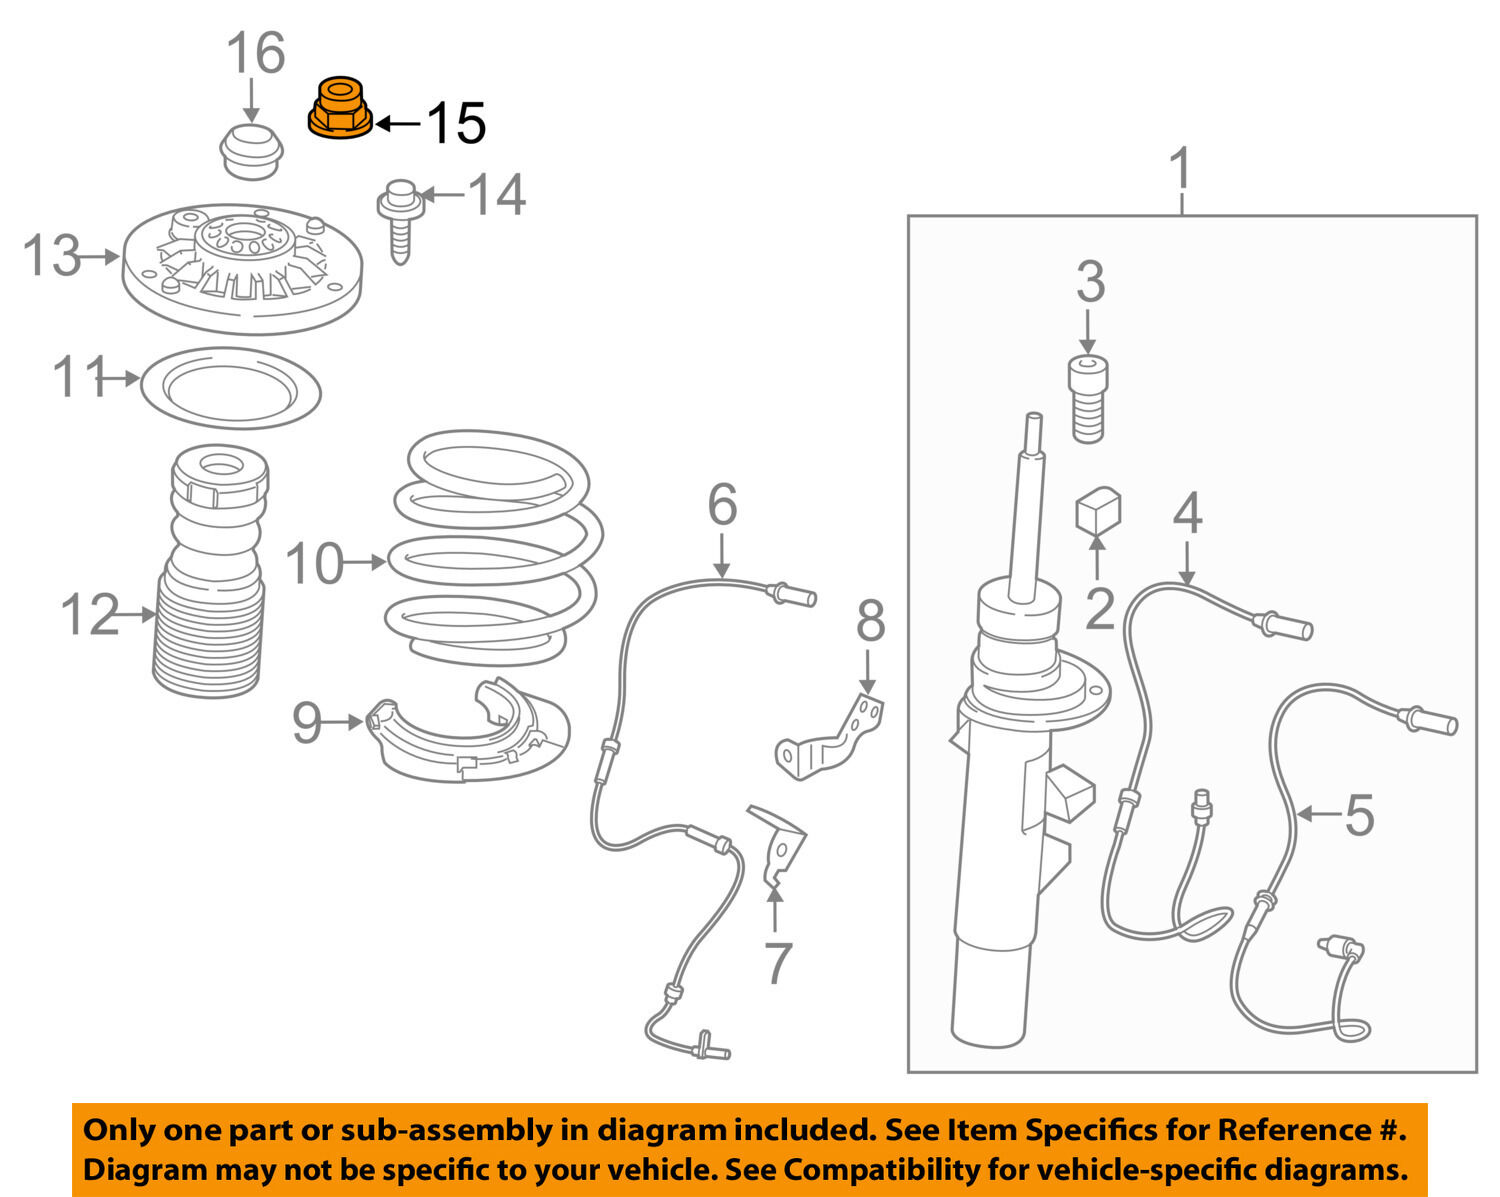 BMW Oem 1117 X3 Rear Suspensionguide Support Nut 33326760368. 1 Of 2free Shipping. BMW. BMW X3 Suspension Diagram At Scoala.co